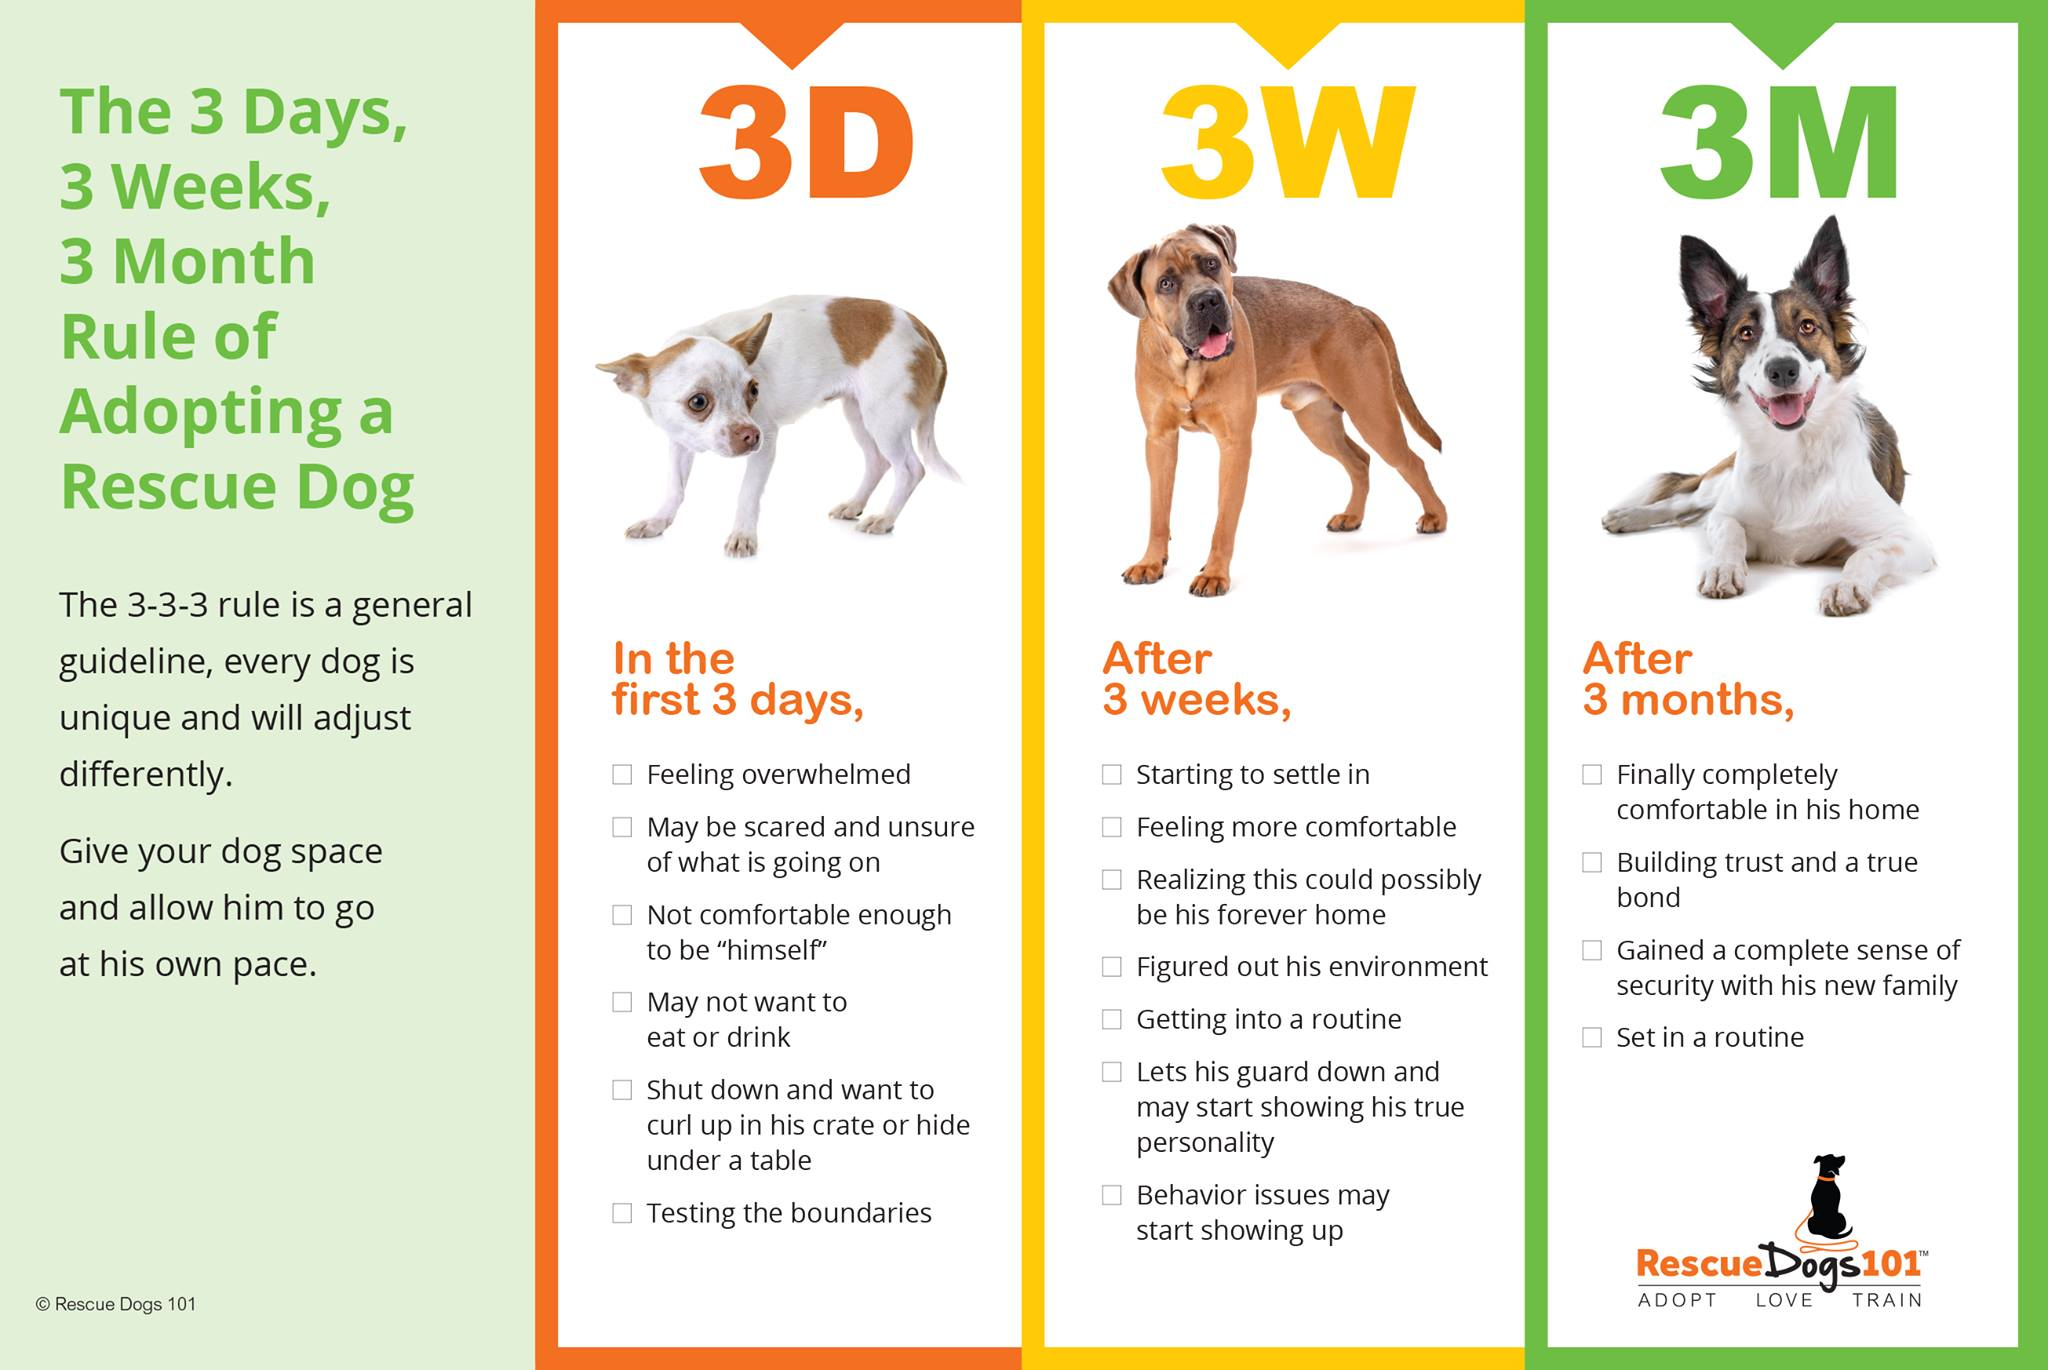 The rescue dog rule of 3